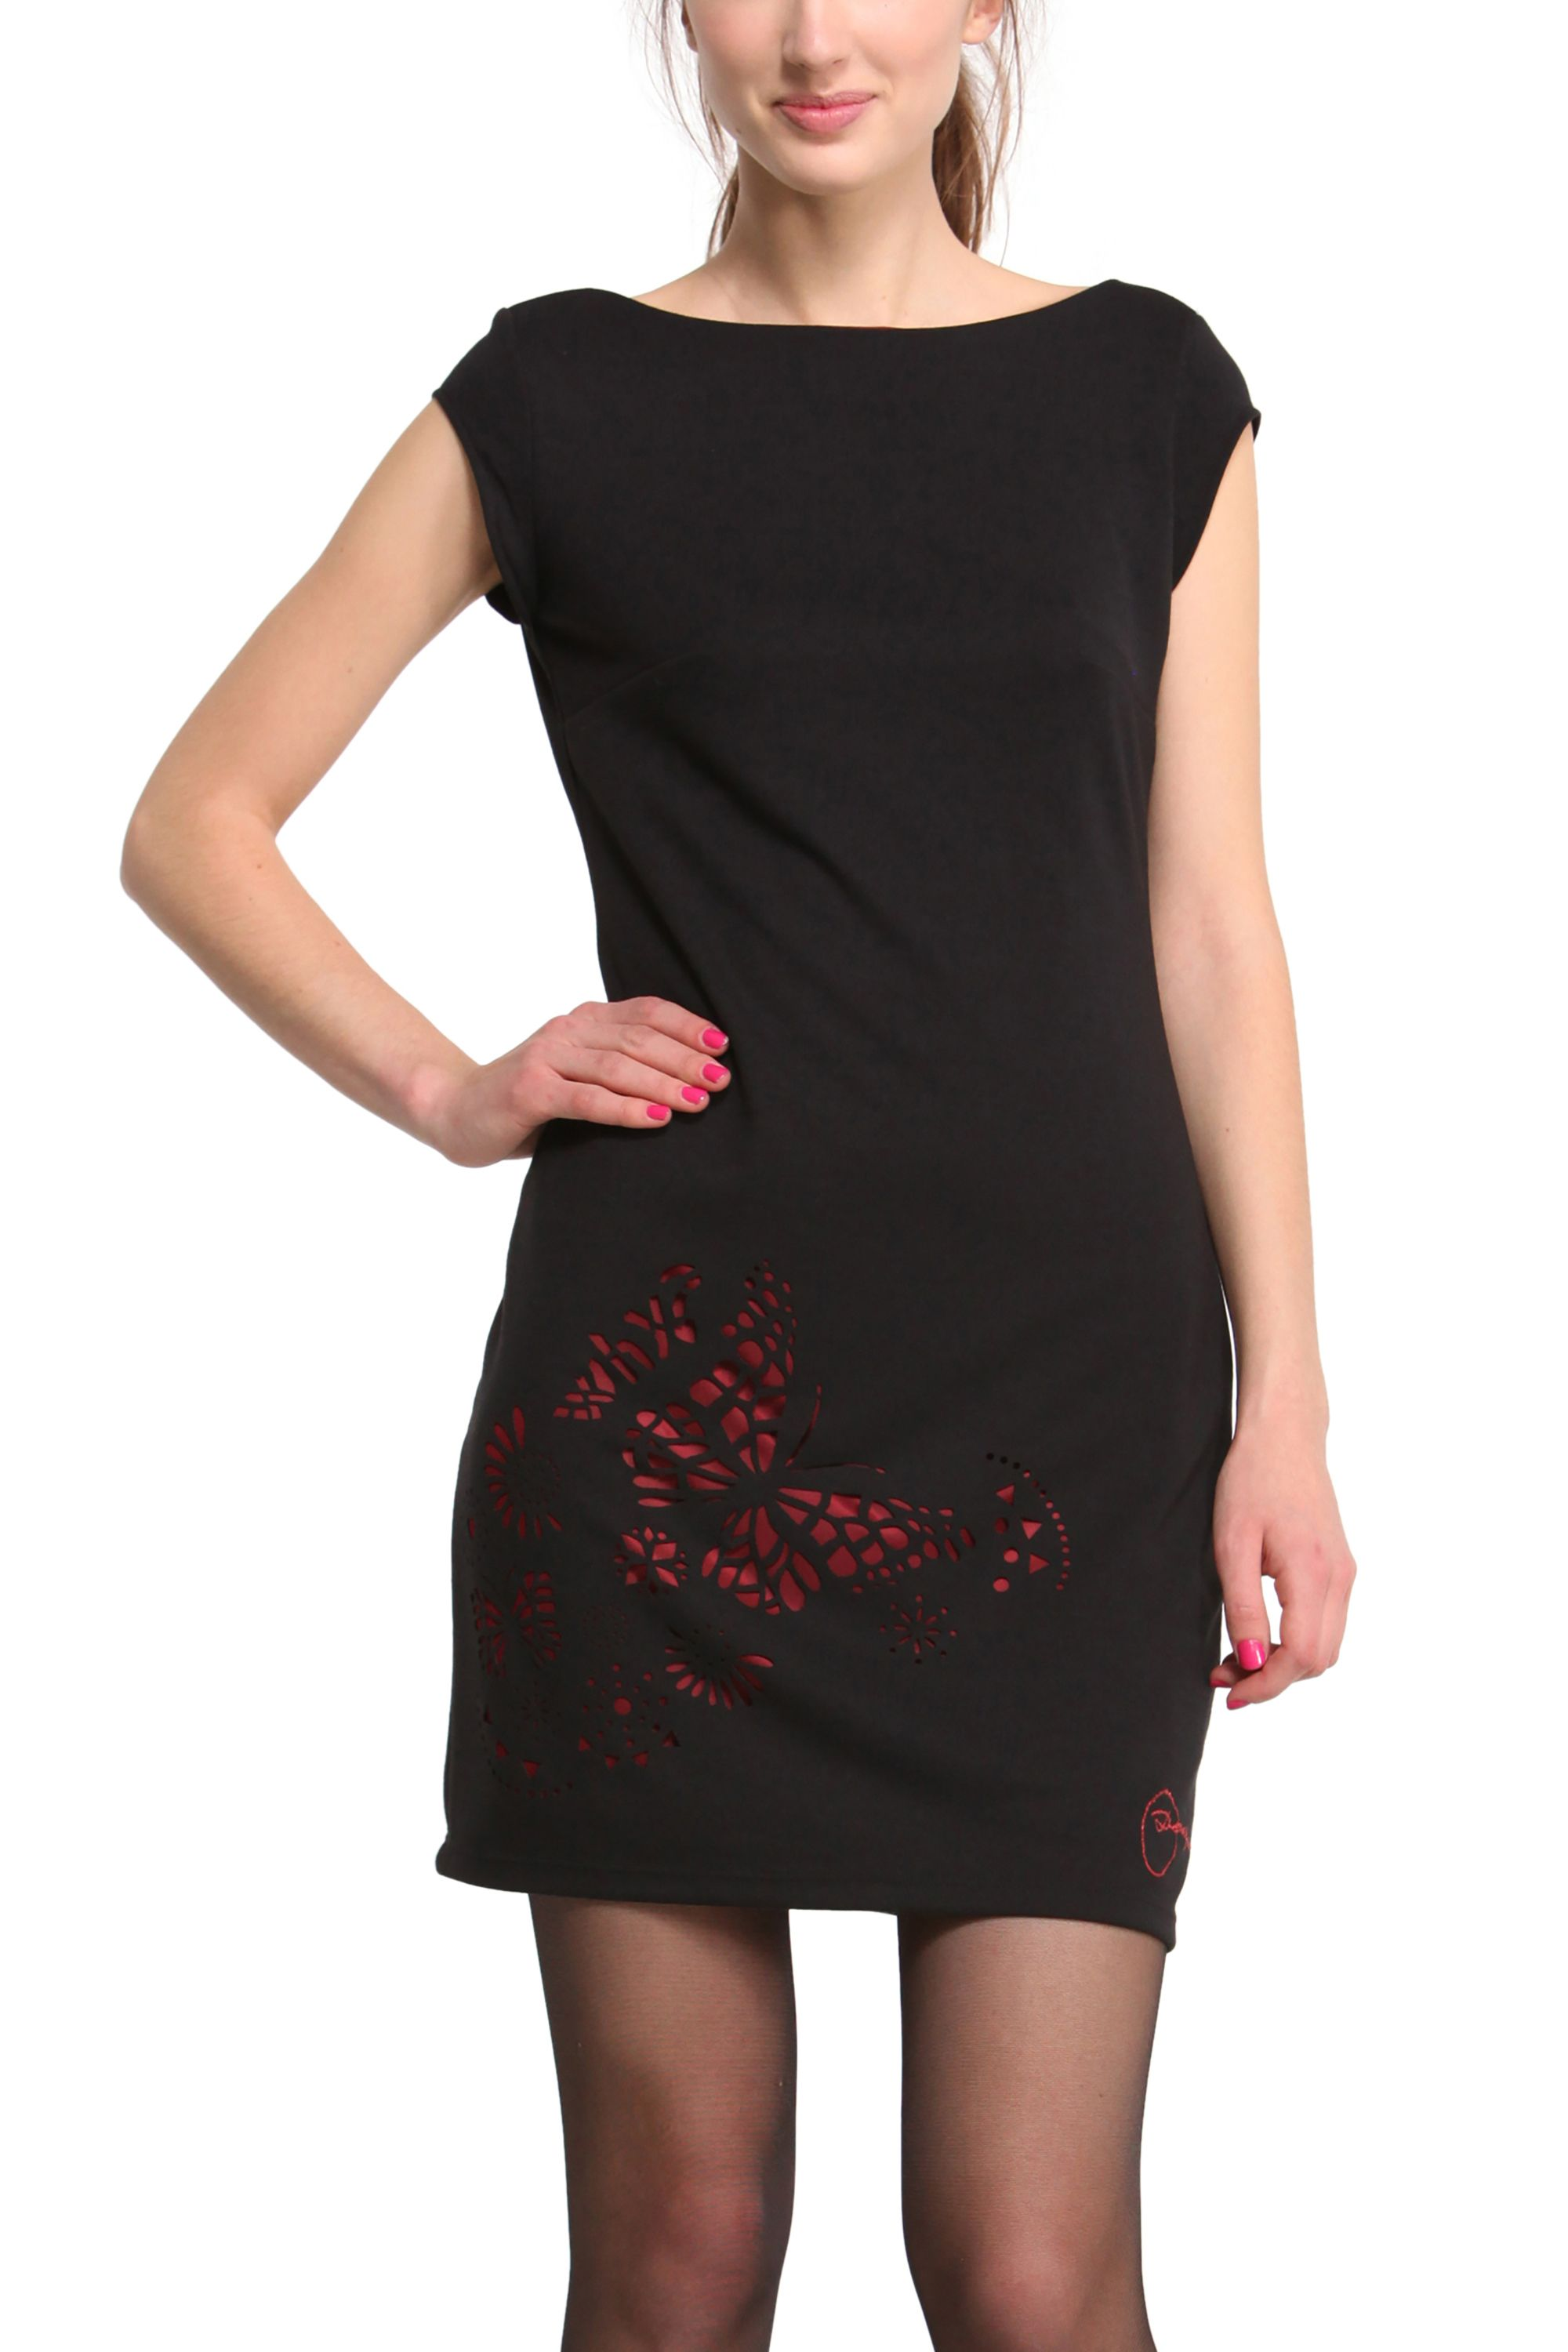 Soledad slim fit dress